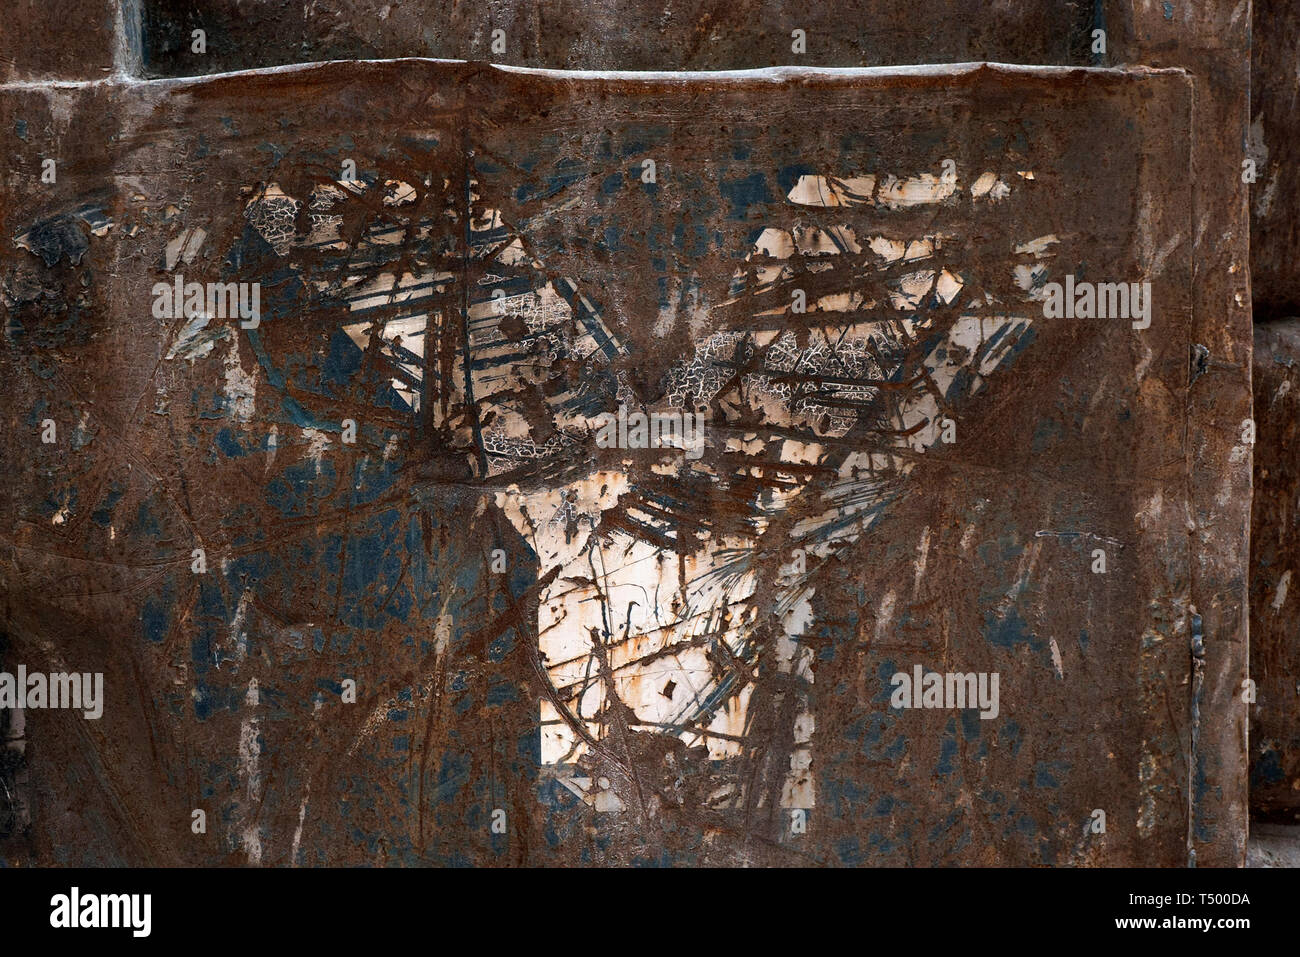 A Close Up Of The Letter Y On The Side Of A Rusty Metal Skip - Stock Image